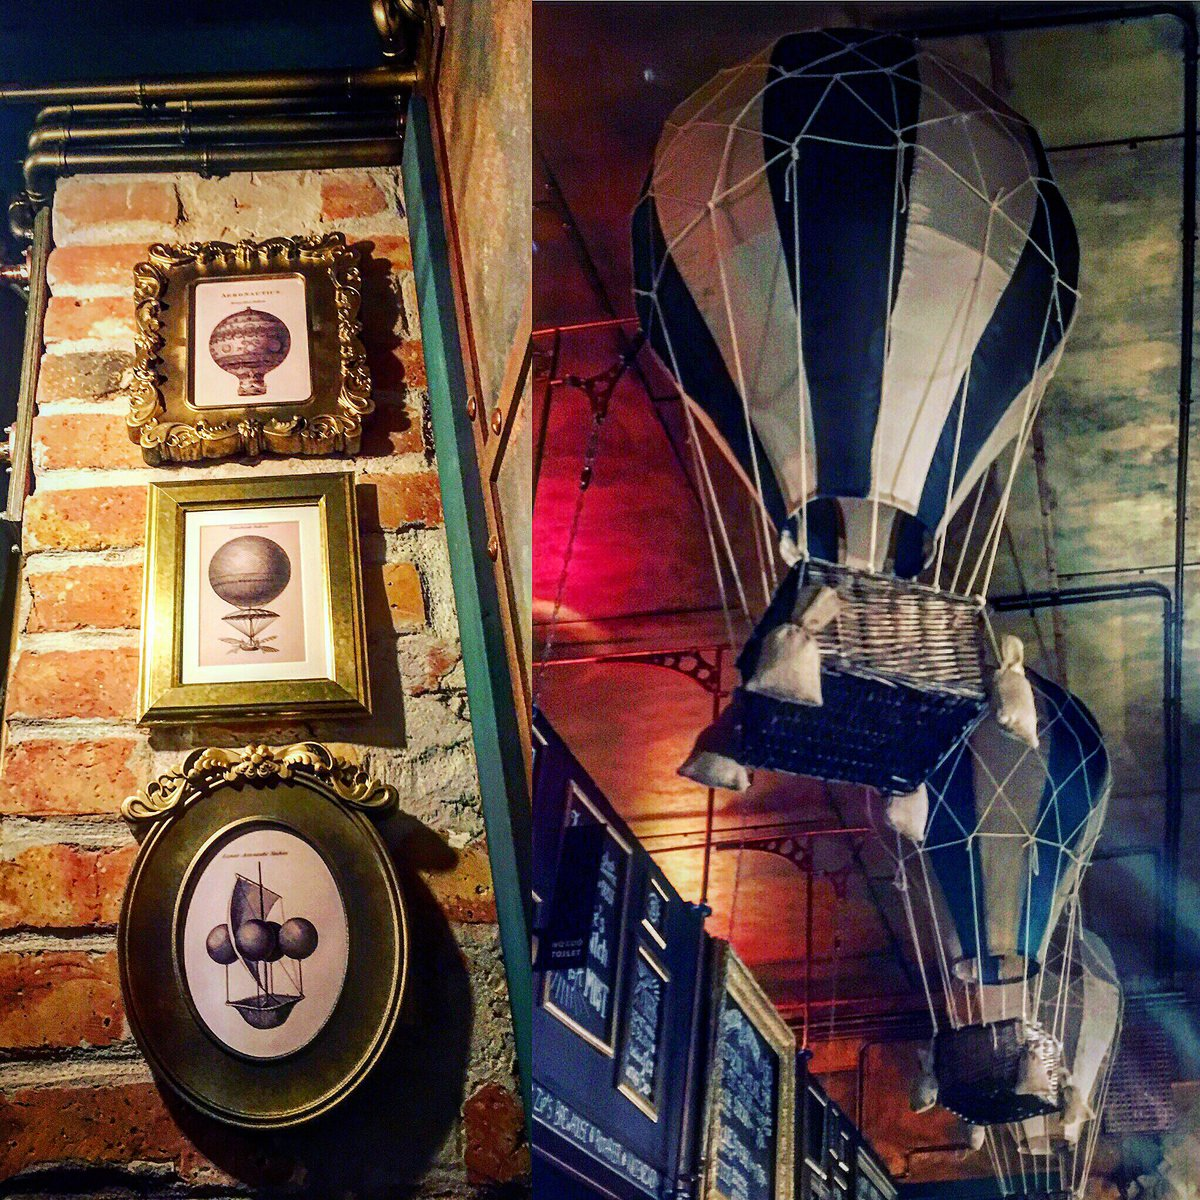 #Design Awesome of the Day: Krak'n Town #Steampunk #Cafe #Restaurant in #Budapest #Hungary via @ExpatPressBud #SamaPlaces #SamaDesign